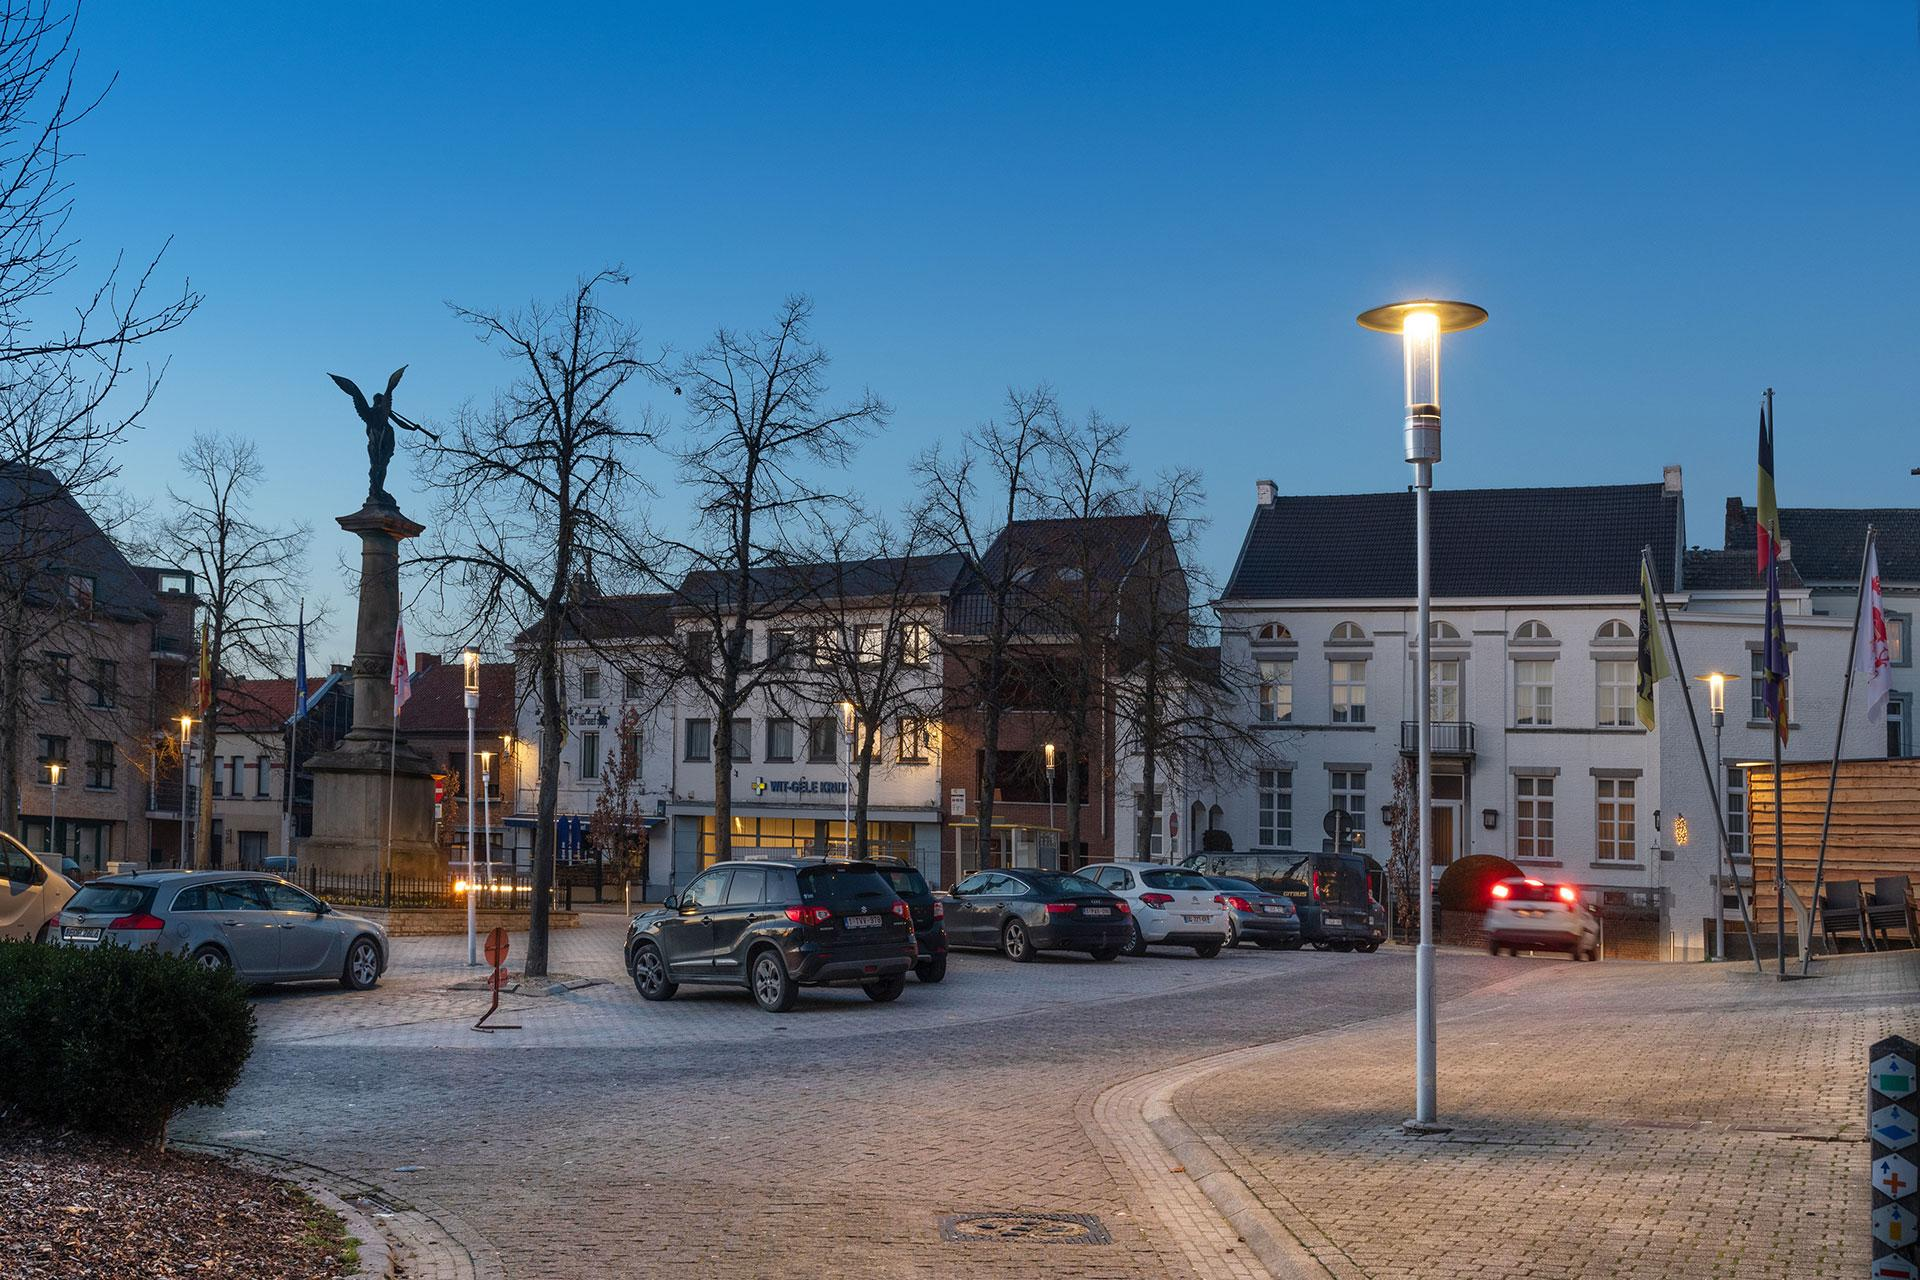 Elegant Shuffle post-top LED luminaire helps Borgloon to significantly reduce energy consumption and create an attractive nocturnal outdoor neighbourhood for citizens